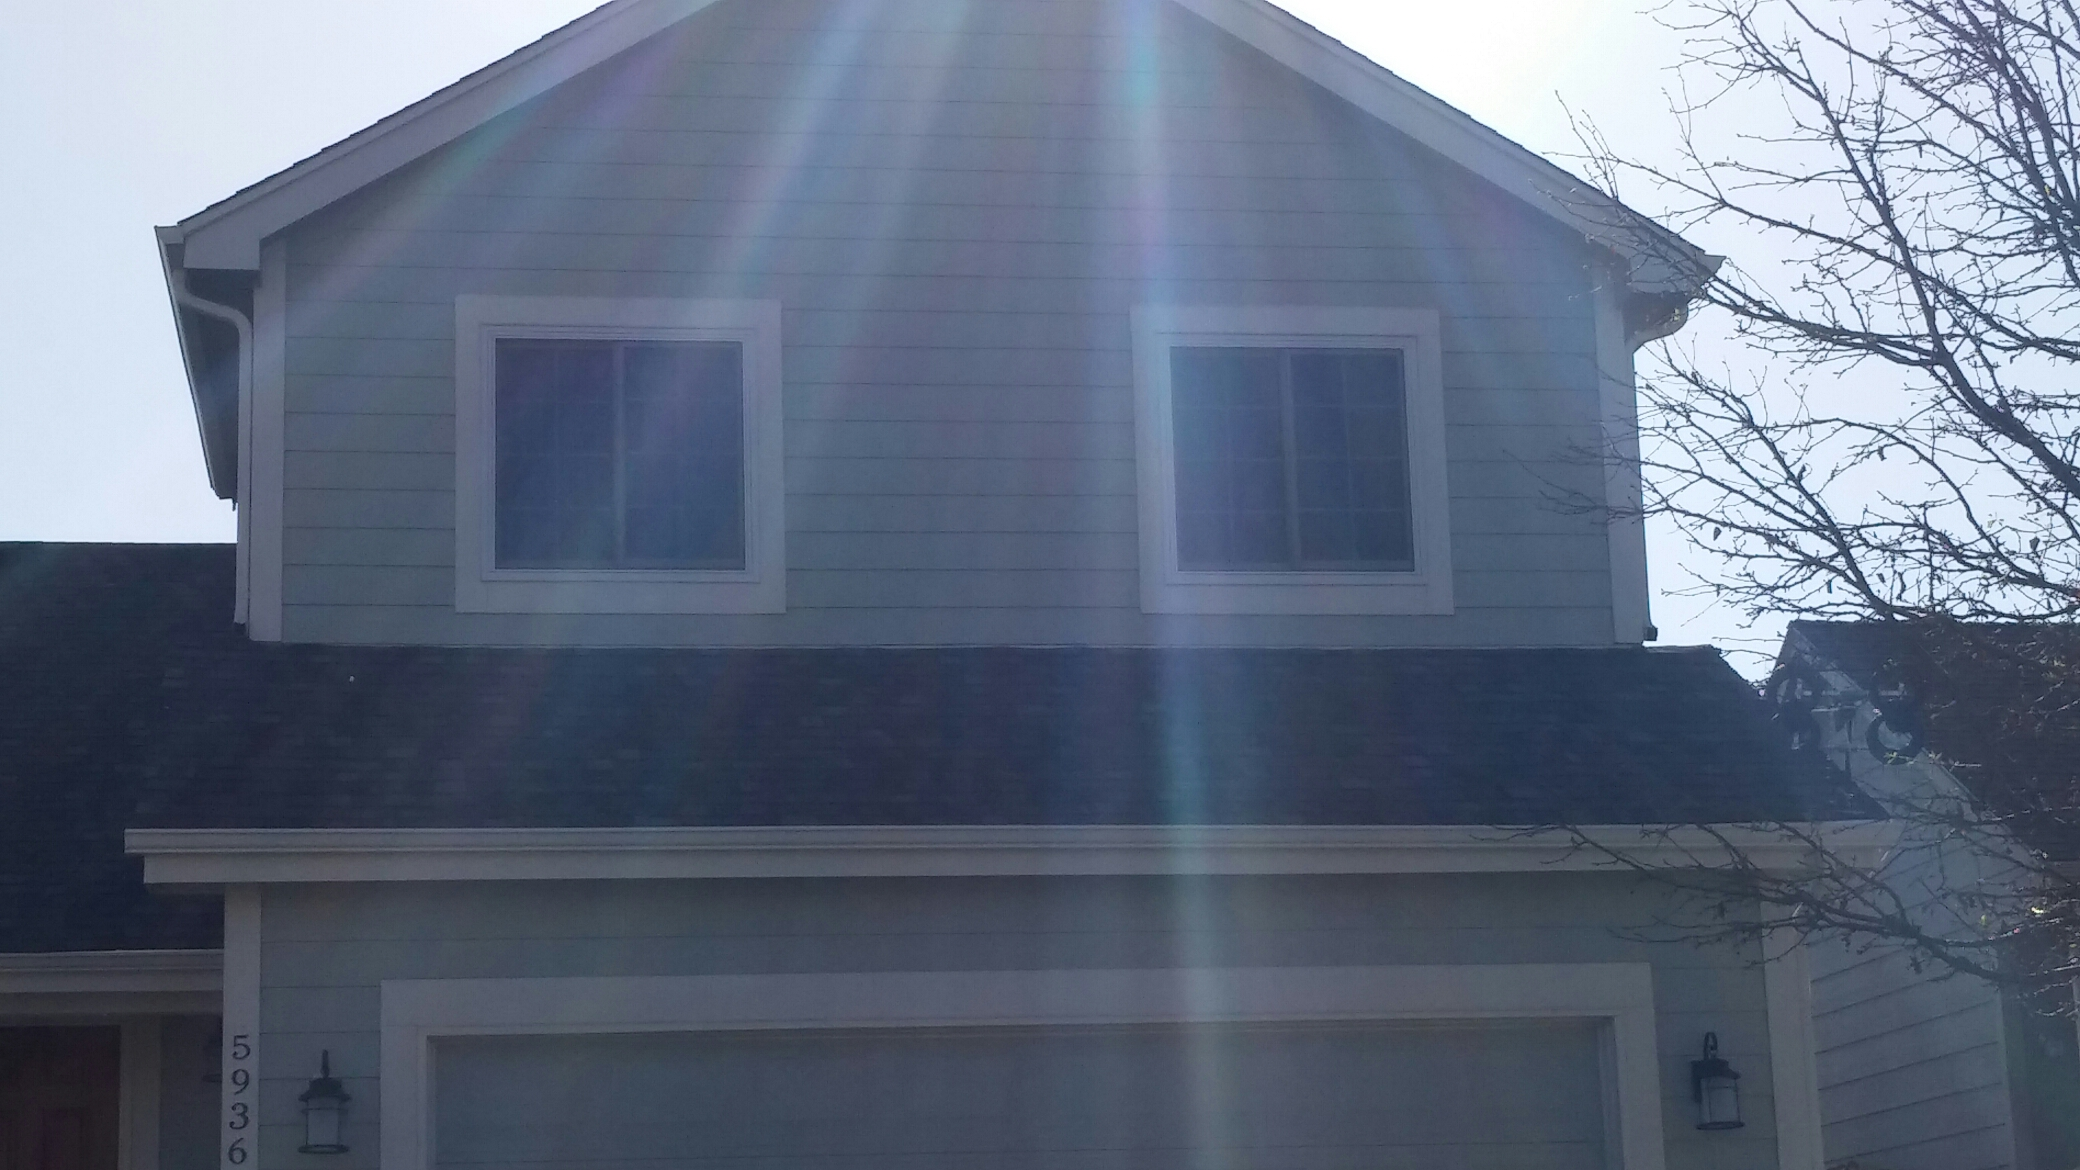 Aurora, CO - Replaced ice cold aluminum windows with Renewal By Andersen Fibrex windows for better comfort.